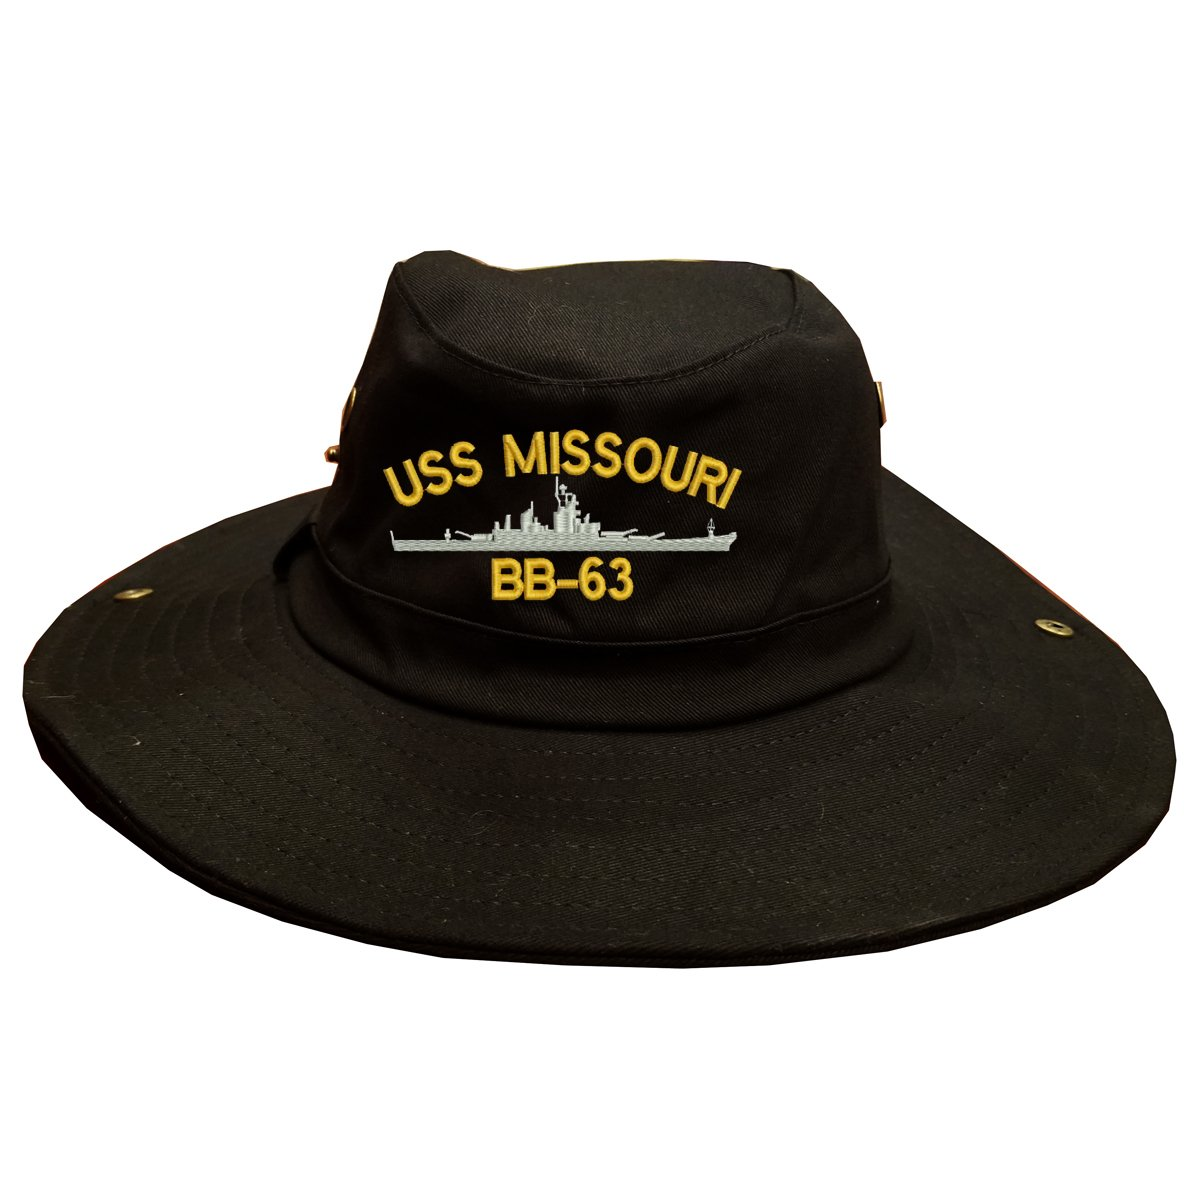 USS Missouri bb-63 Ship 100 % Cotton Military Boonie Bush Hatブラック   B075M8MCG8